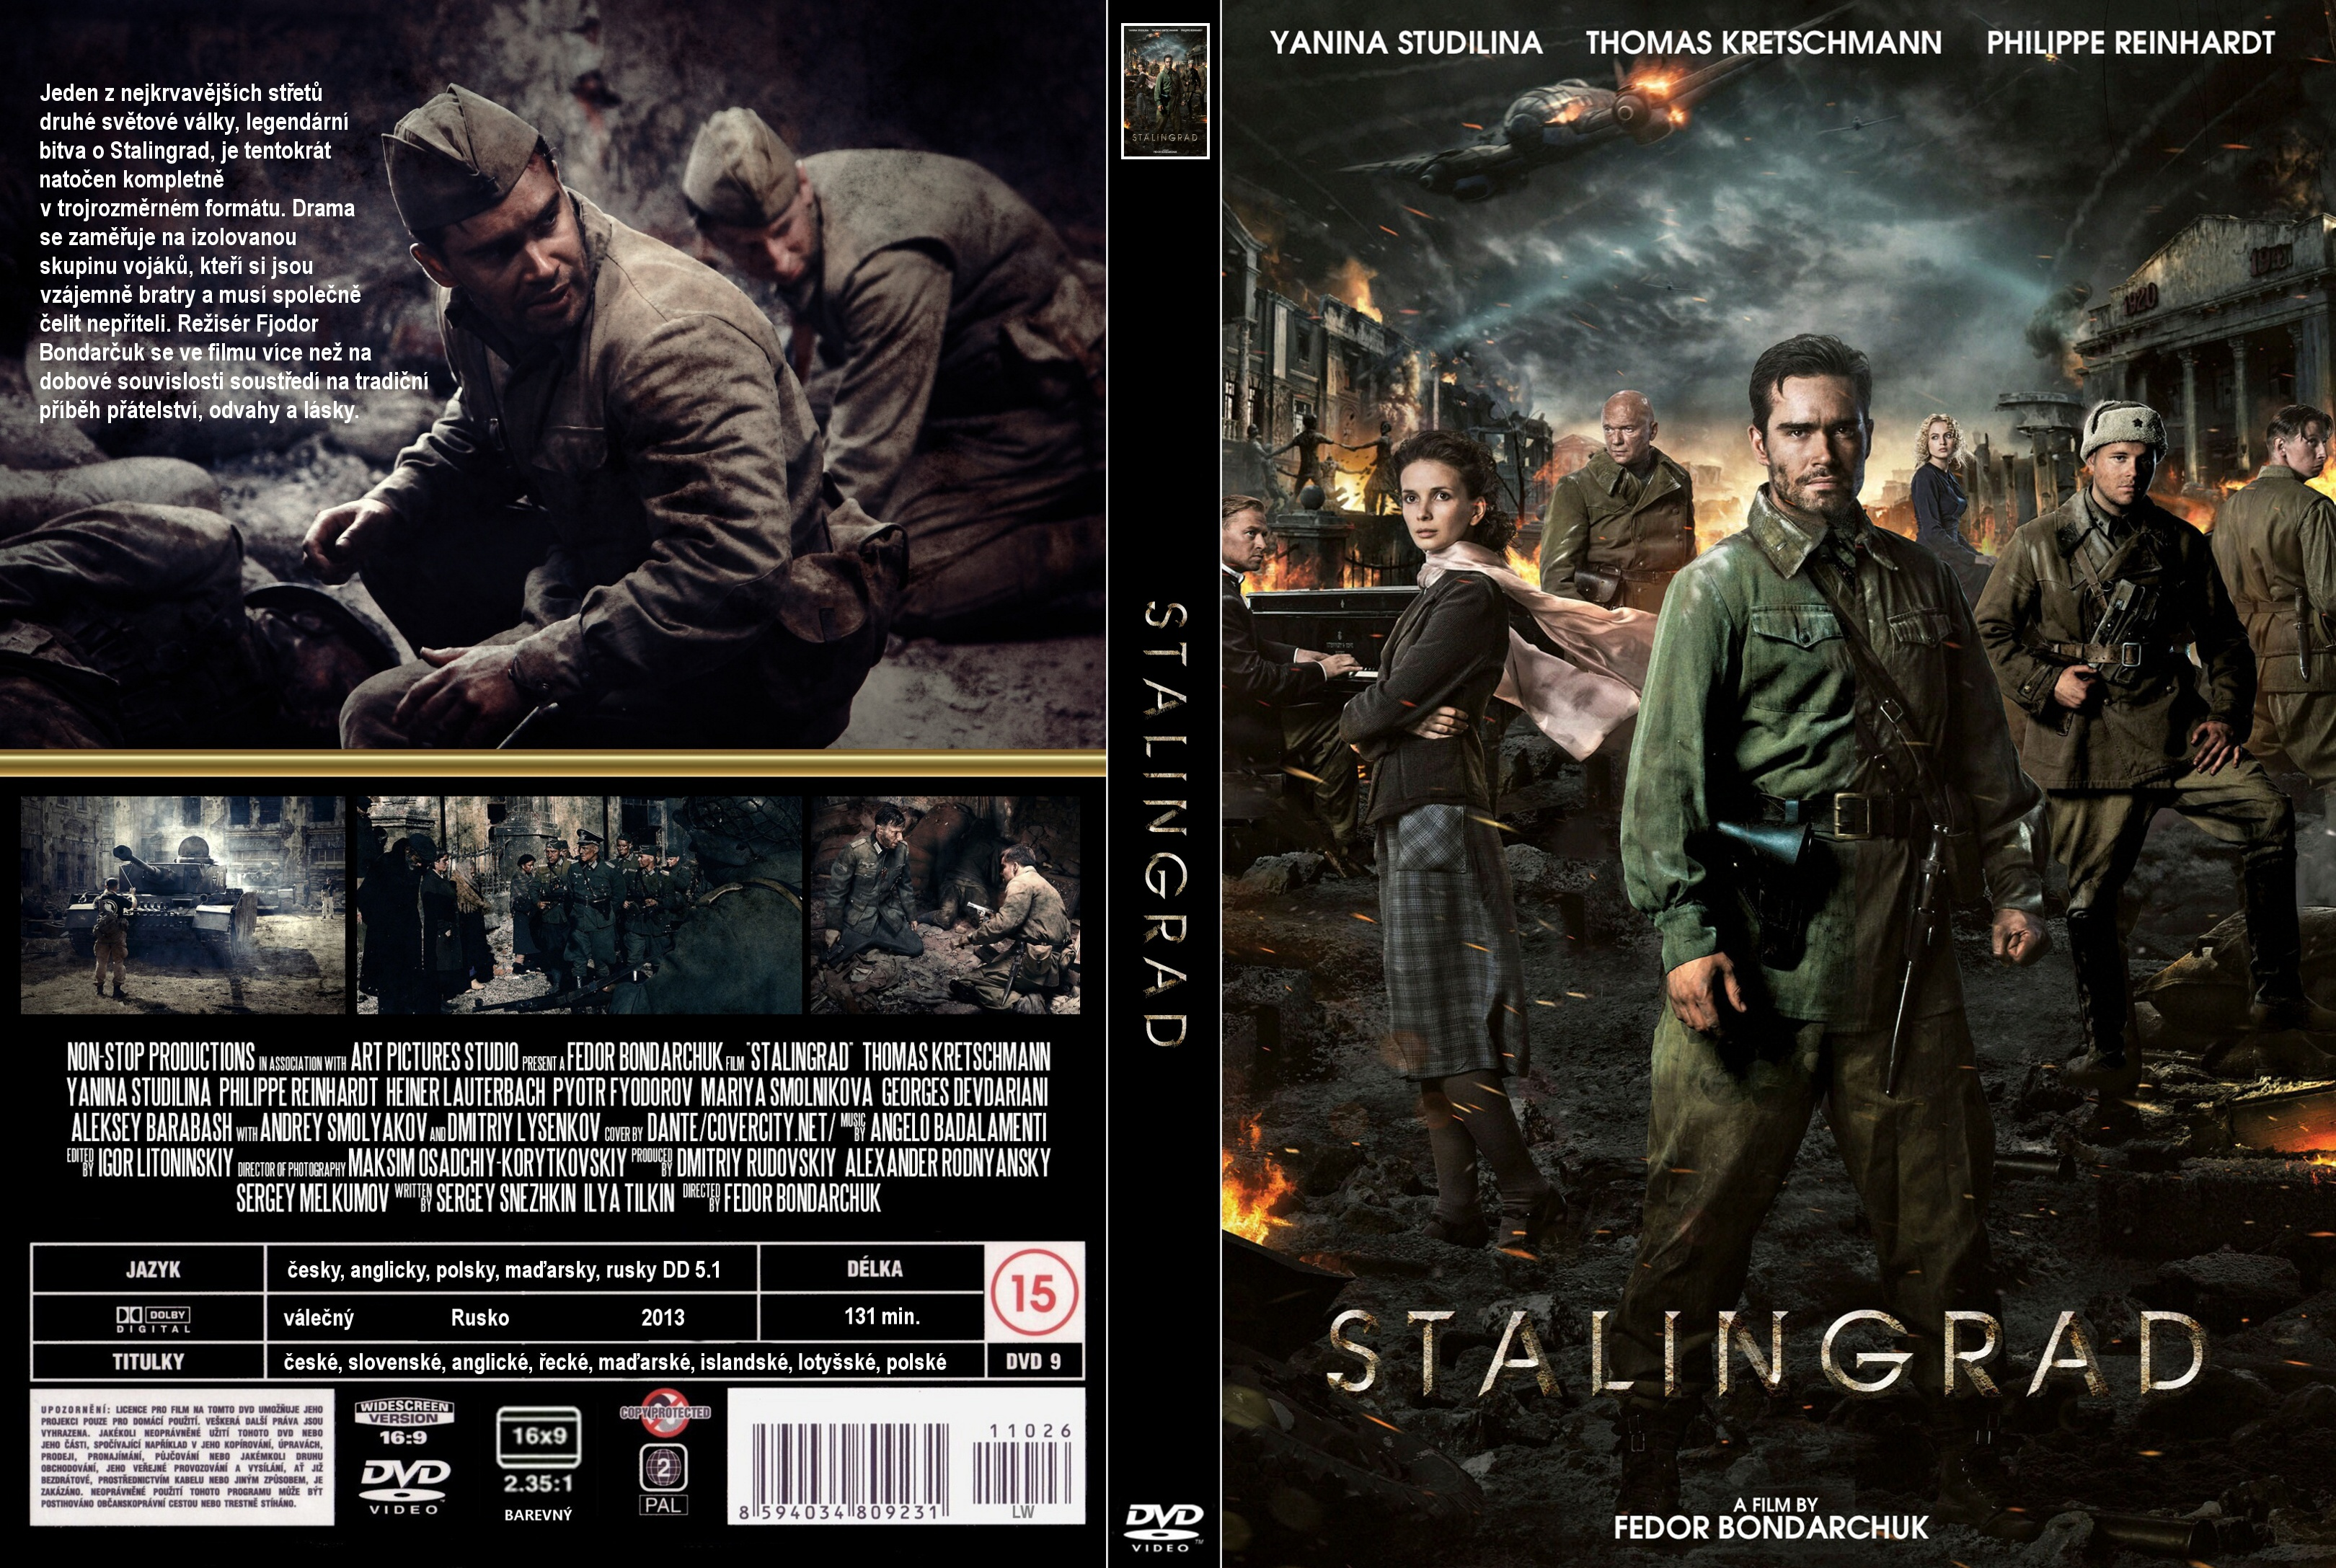 covers box sk stalingrad 2013 high quality dvd blueray movie